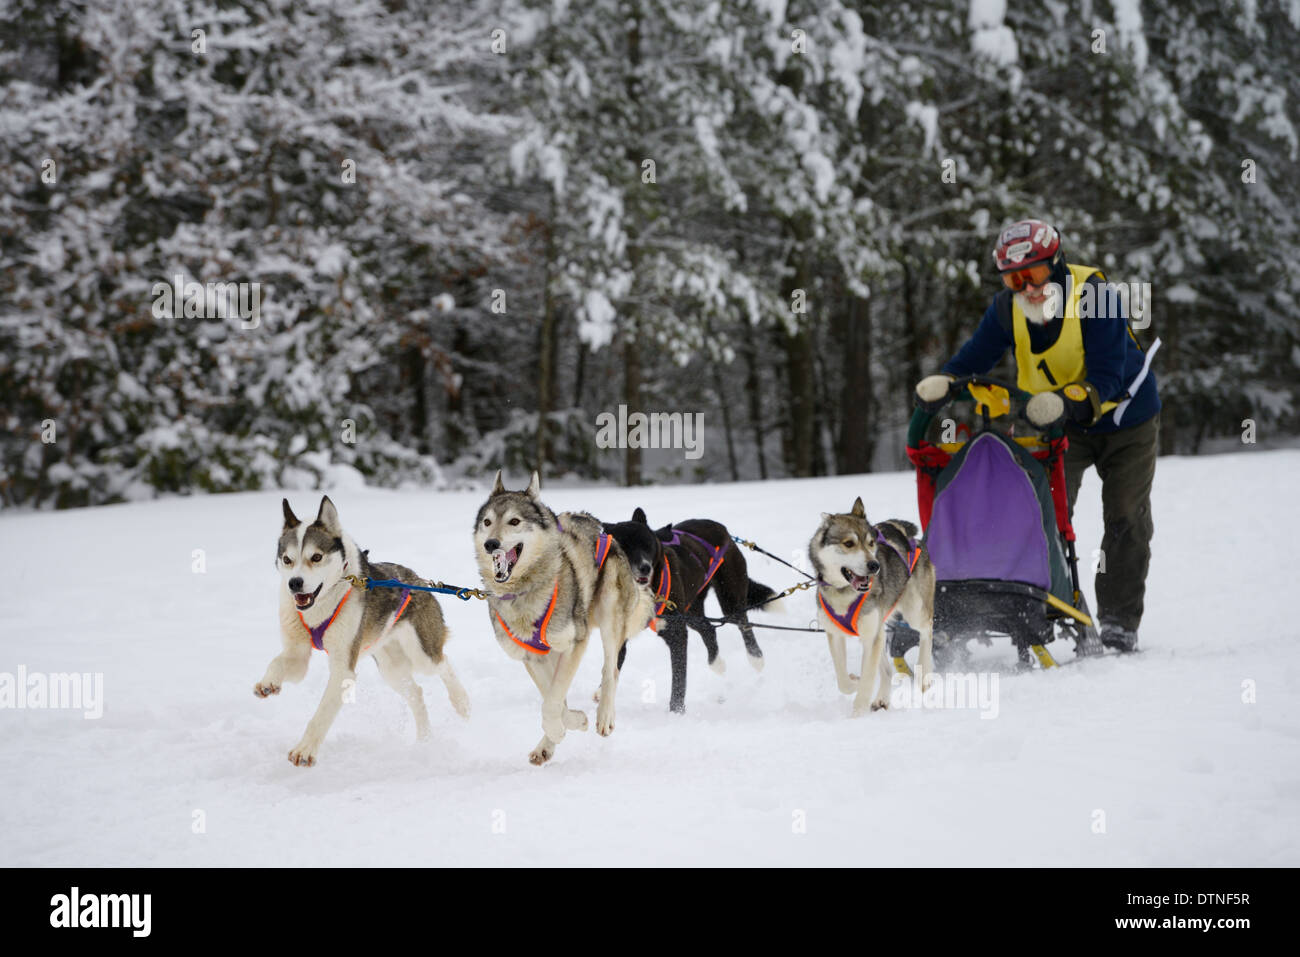 Older male musher passing snowy forest on four dog sled event at Marmora  Ontario Snofest - Stock Image